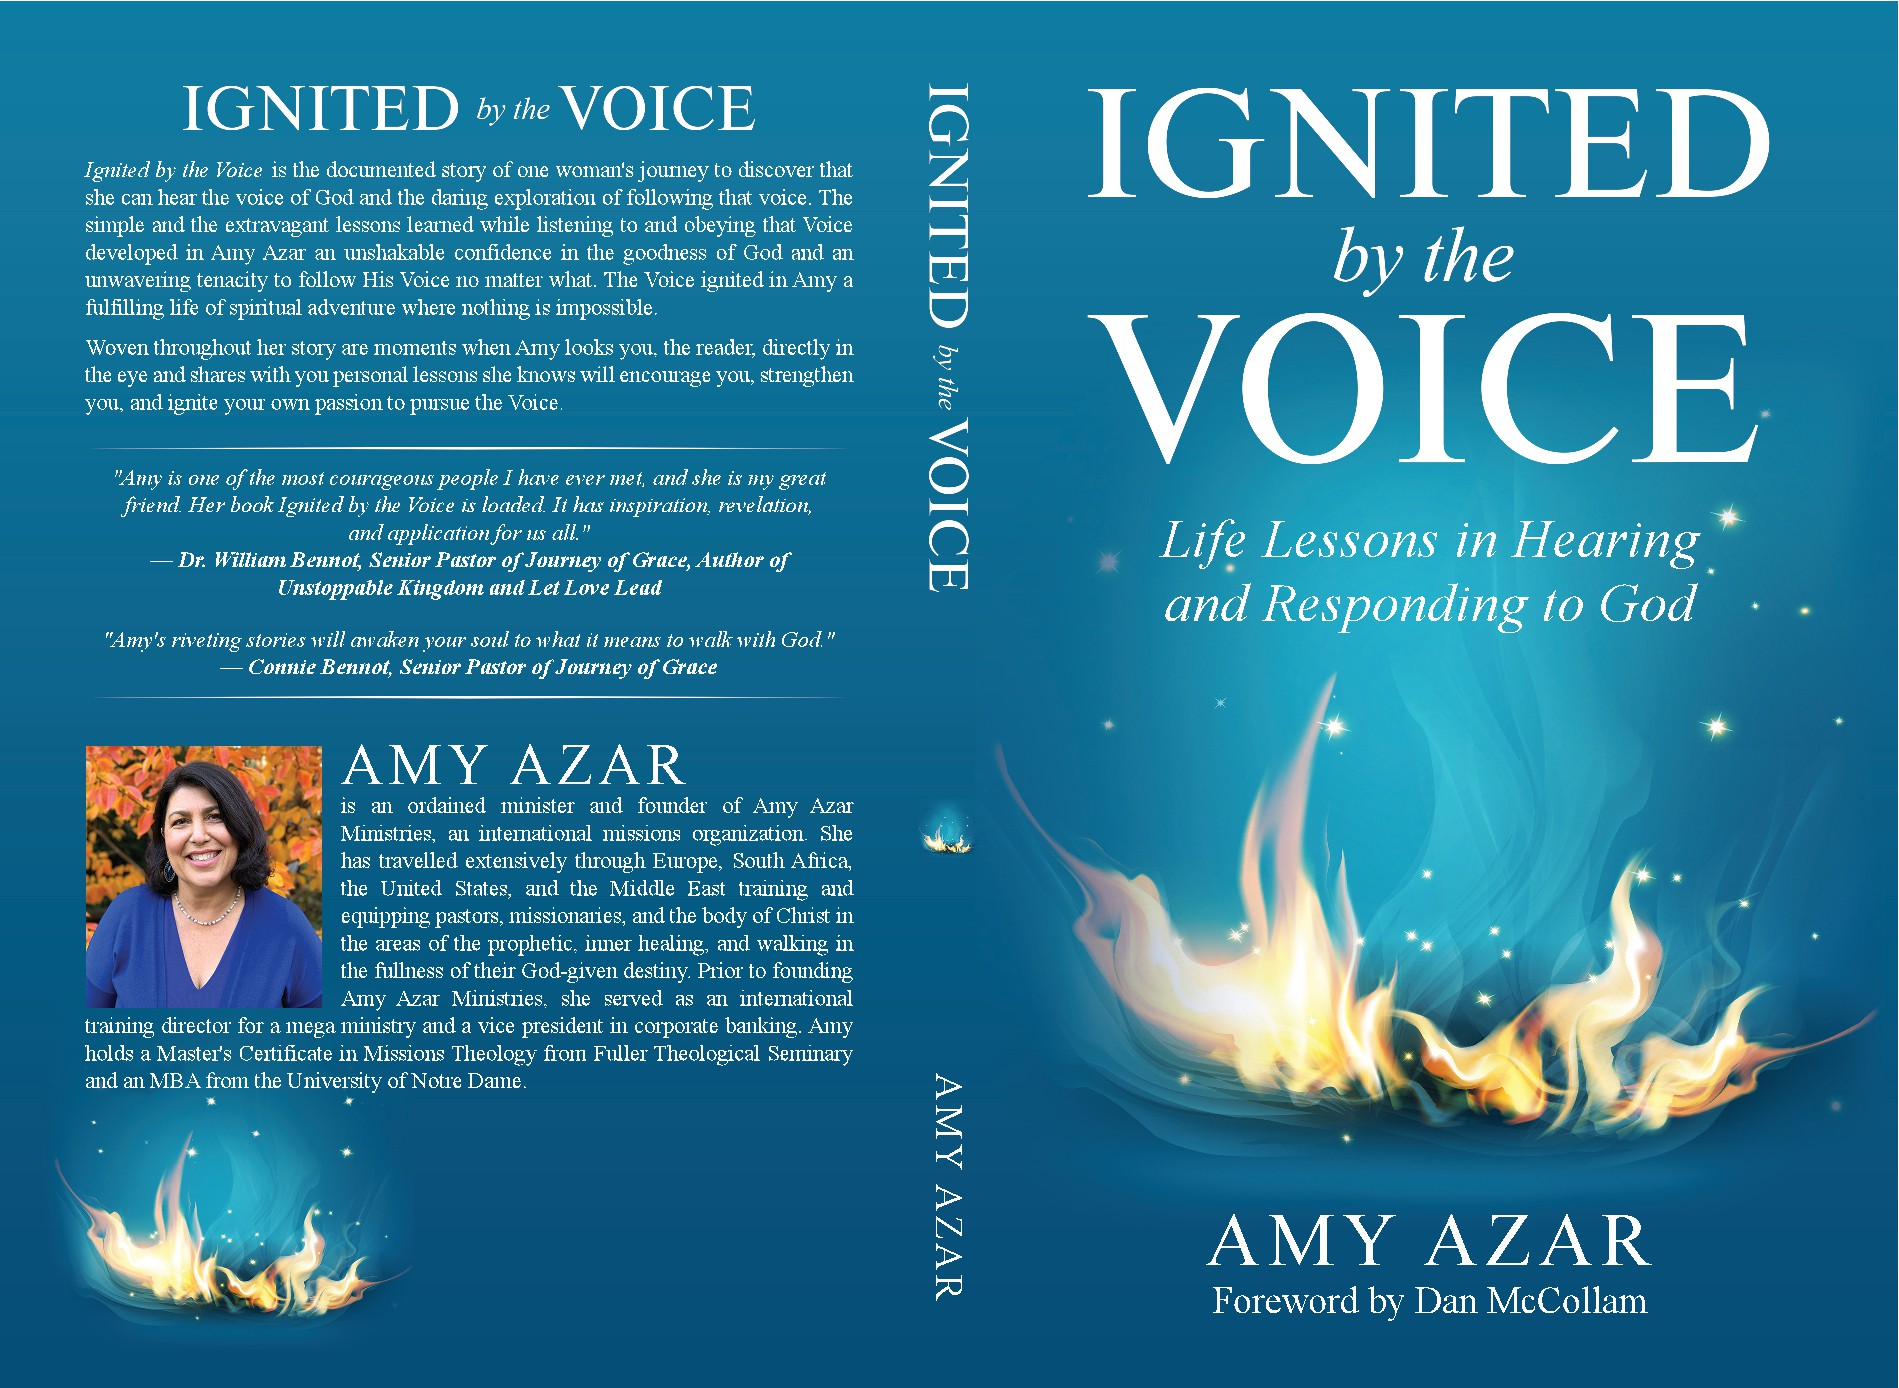 Ignited by the Voice book cover design